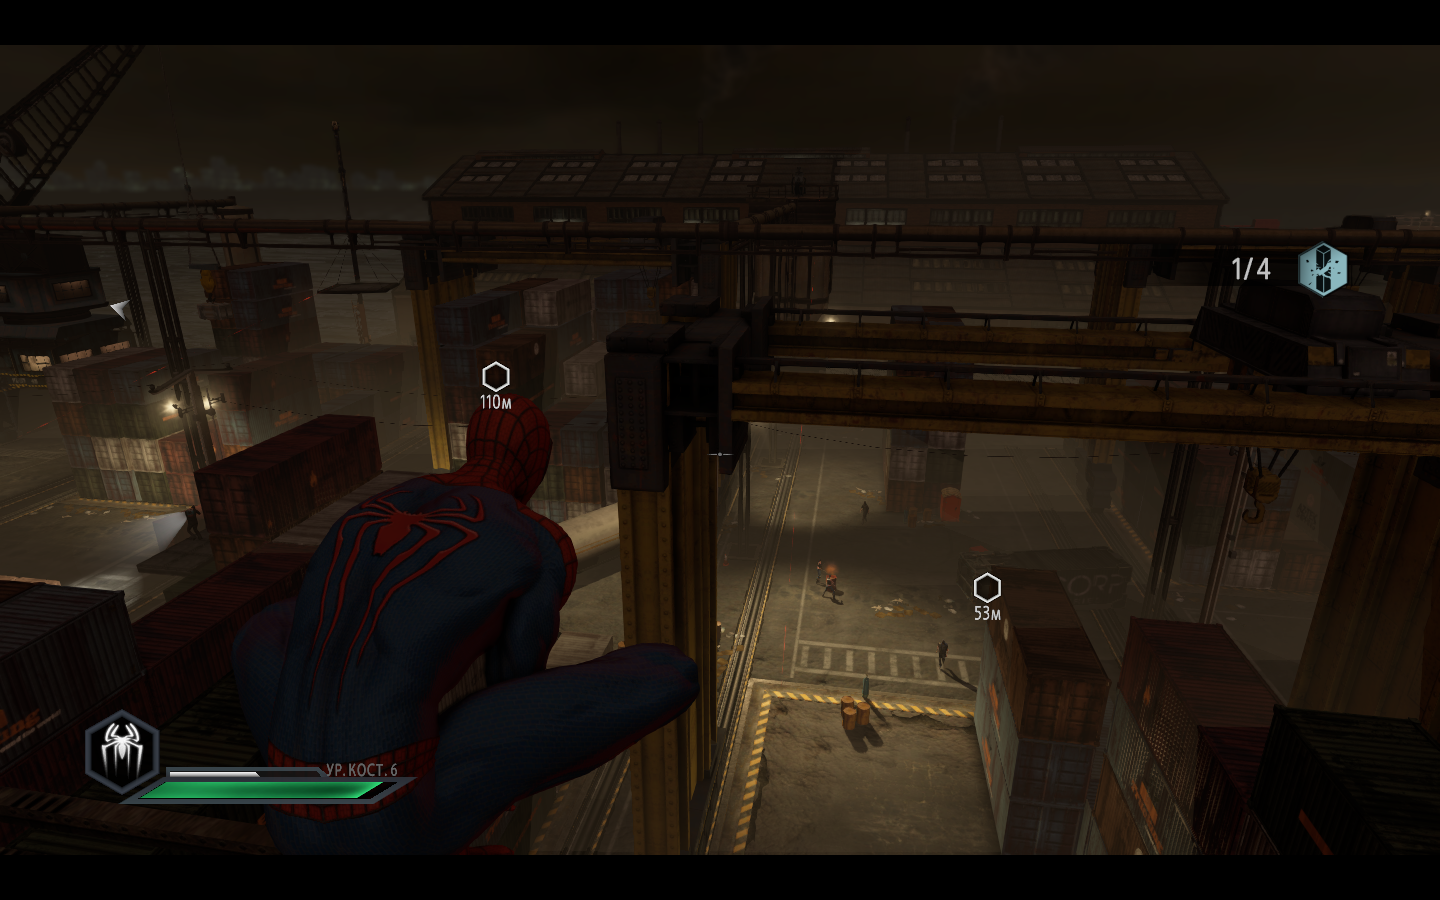 The Amazing Spider-Man 2 27.08.2018 21_38_55.png - -